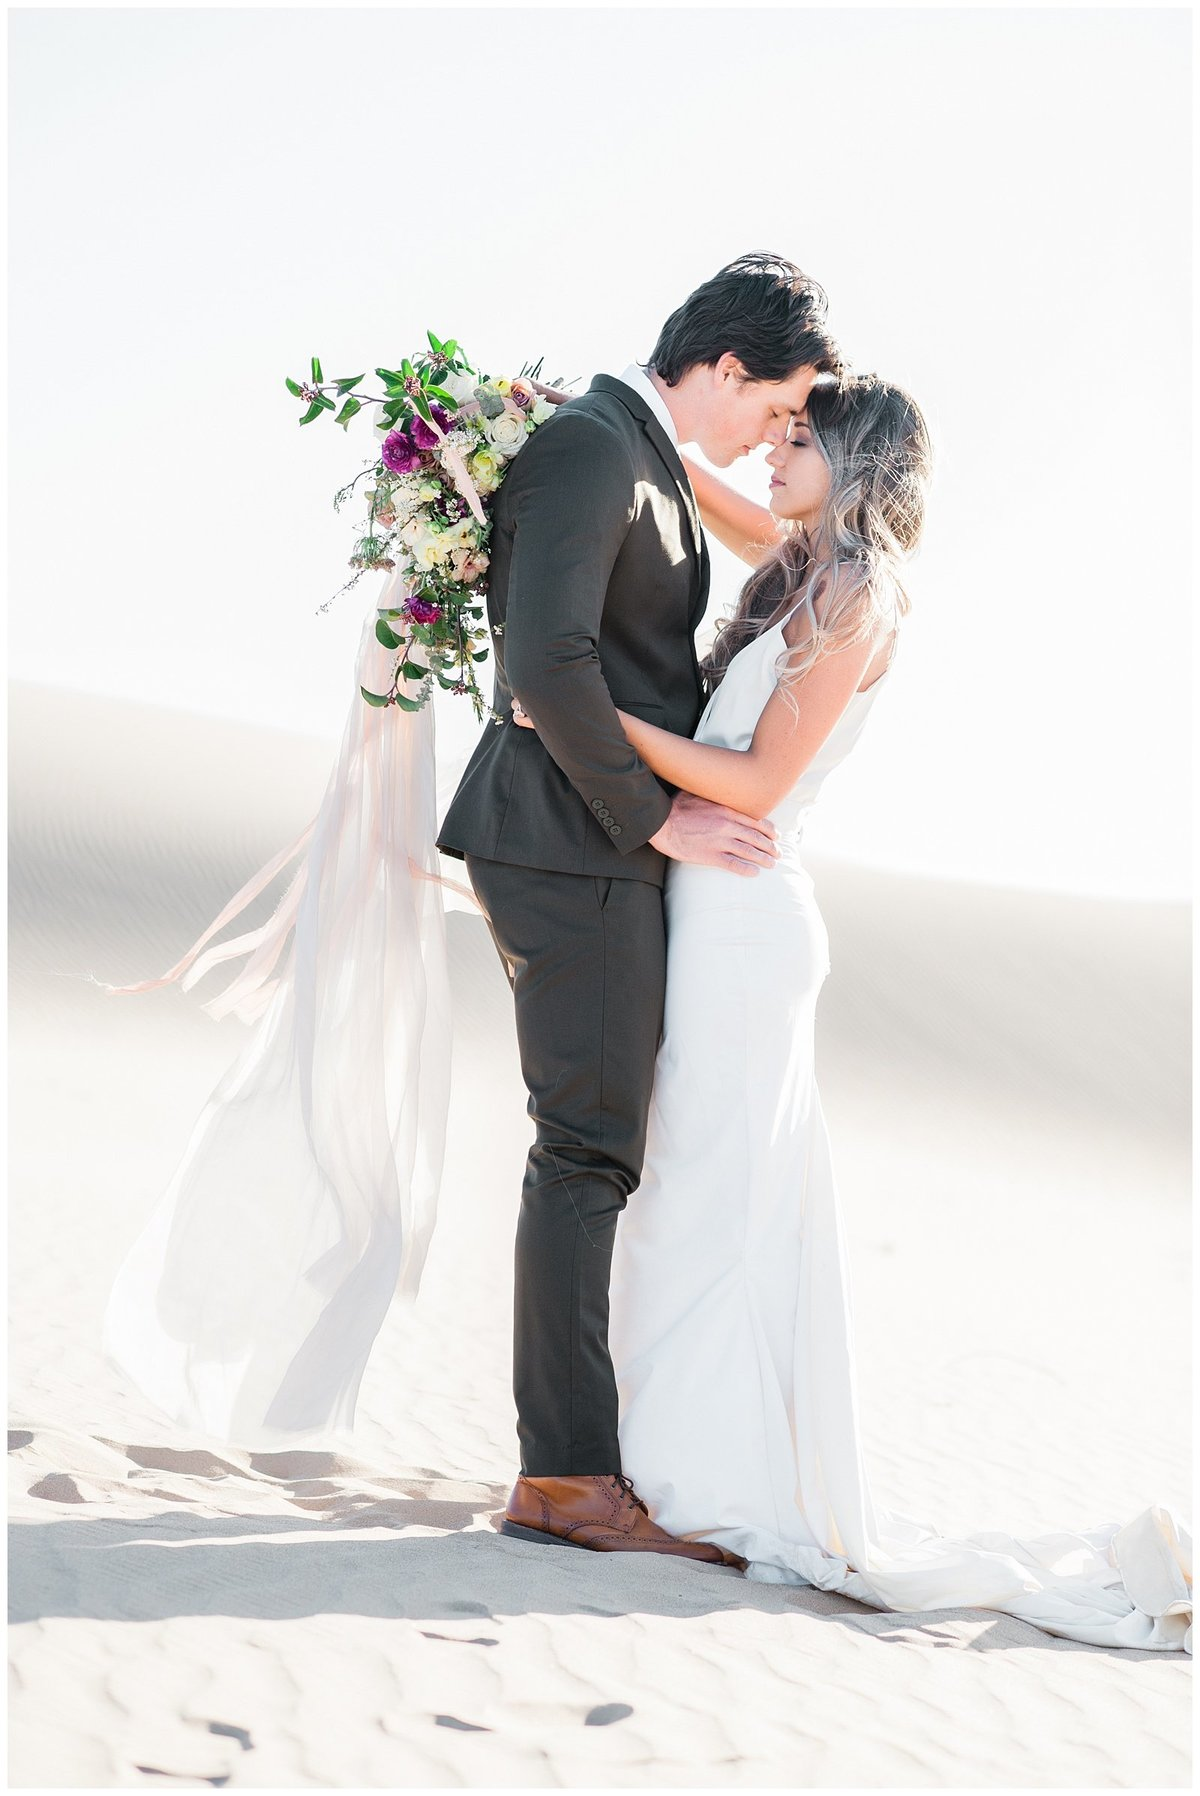 Glamis Desert Bohemian Wedding Styled elopement southern california sand dunes photo014